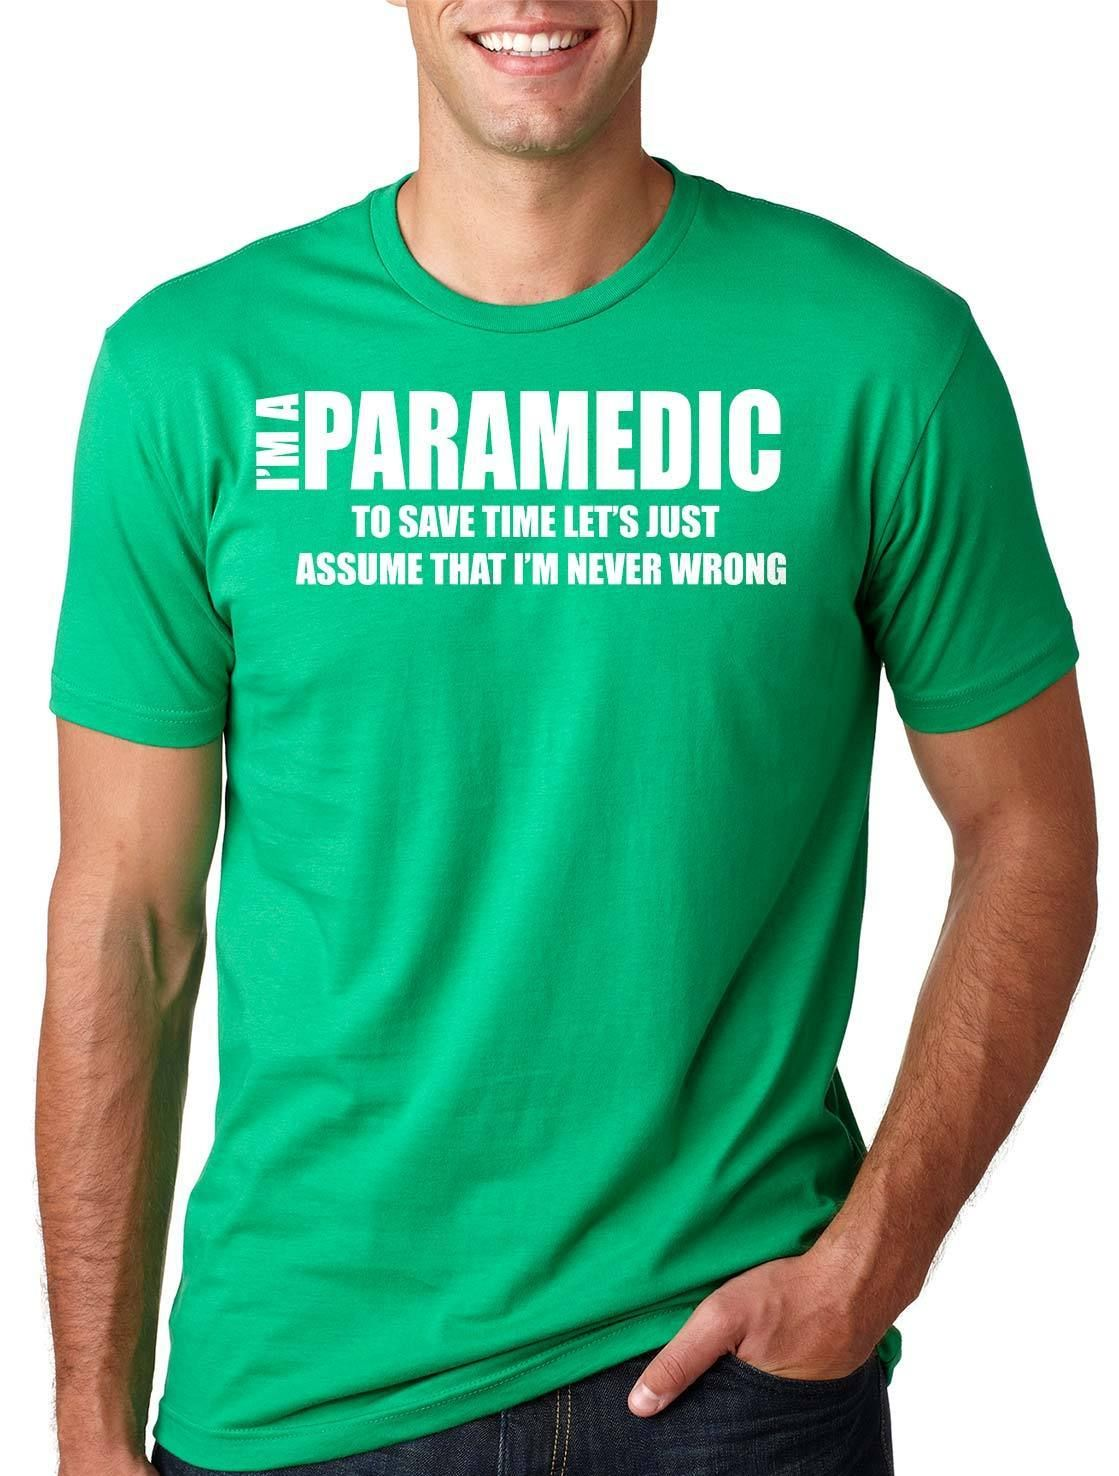 Details about paramedic funny tshirt emt paramedic gift